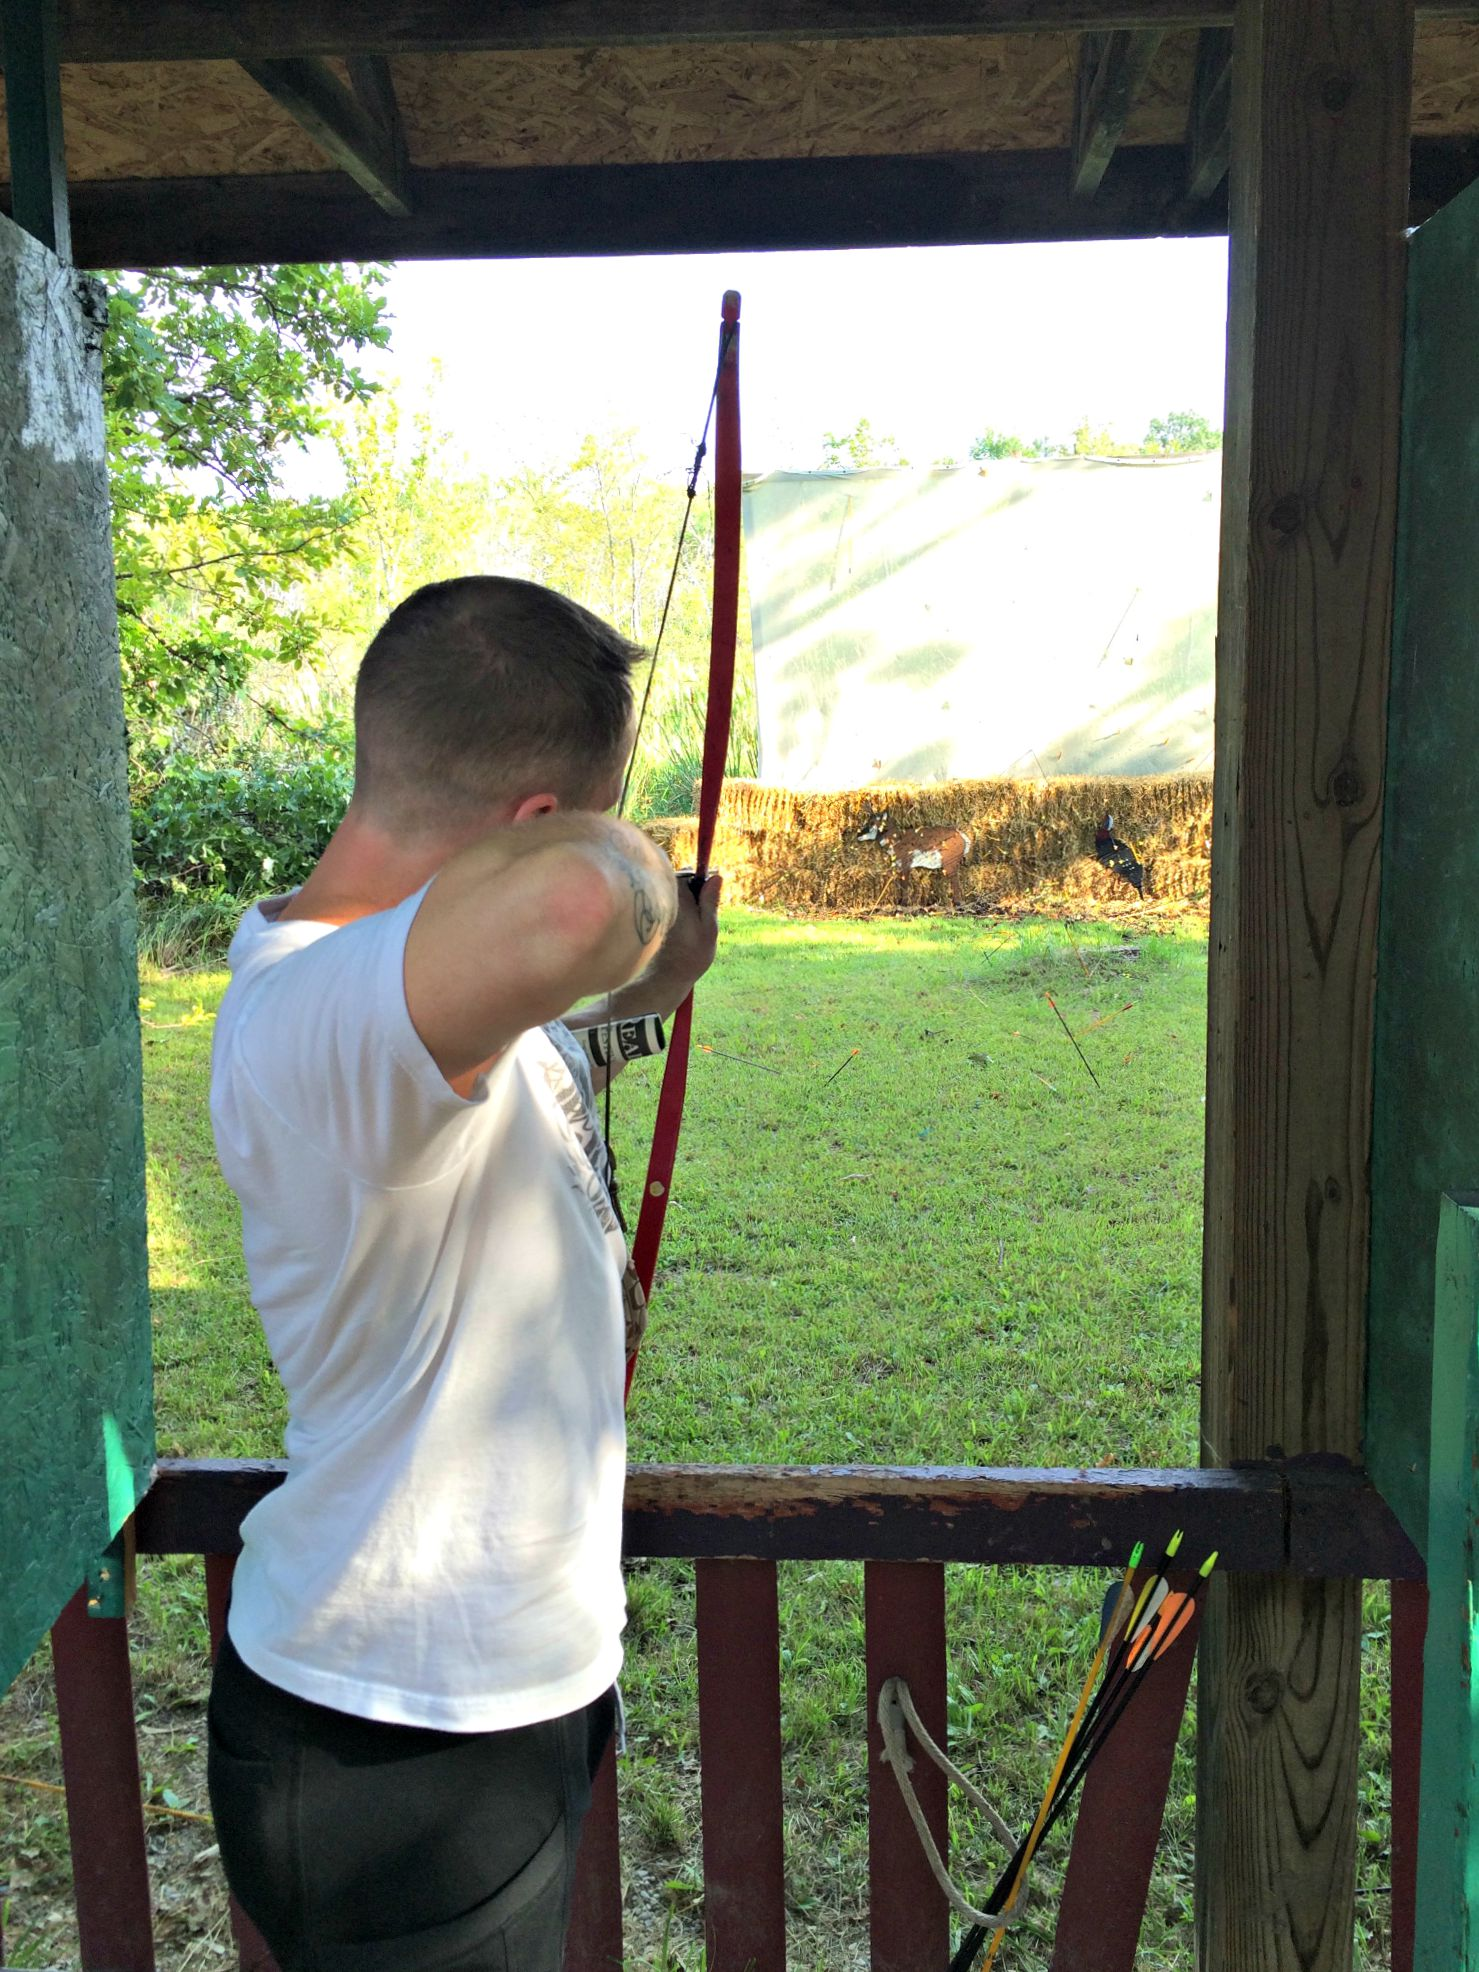 scott shooting a bow and arrow